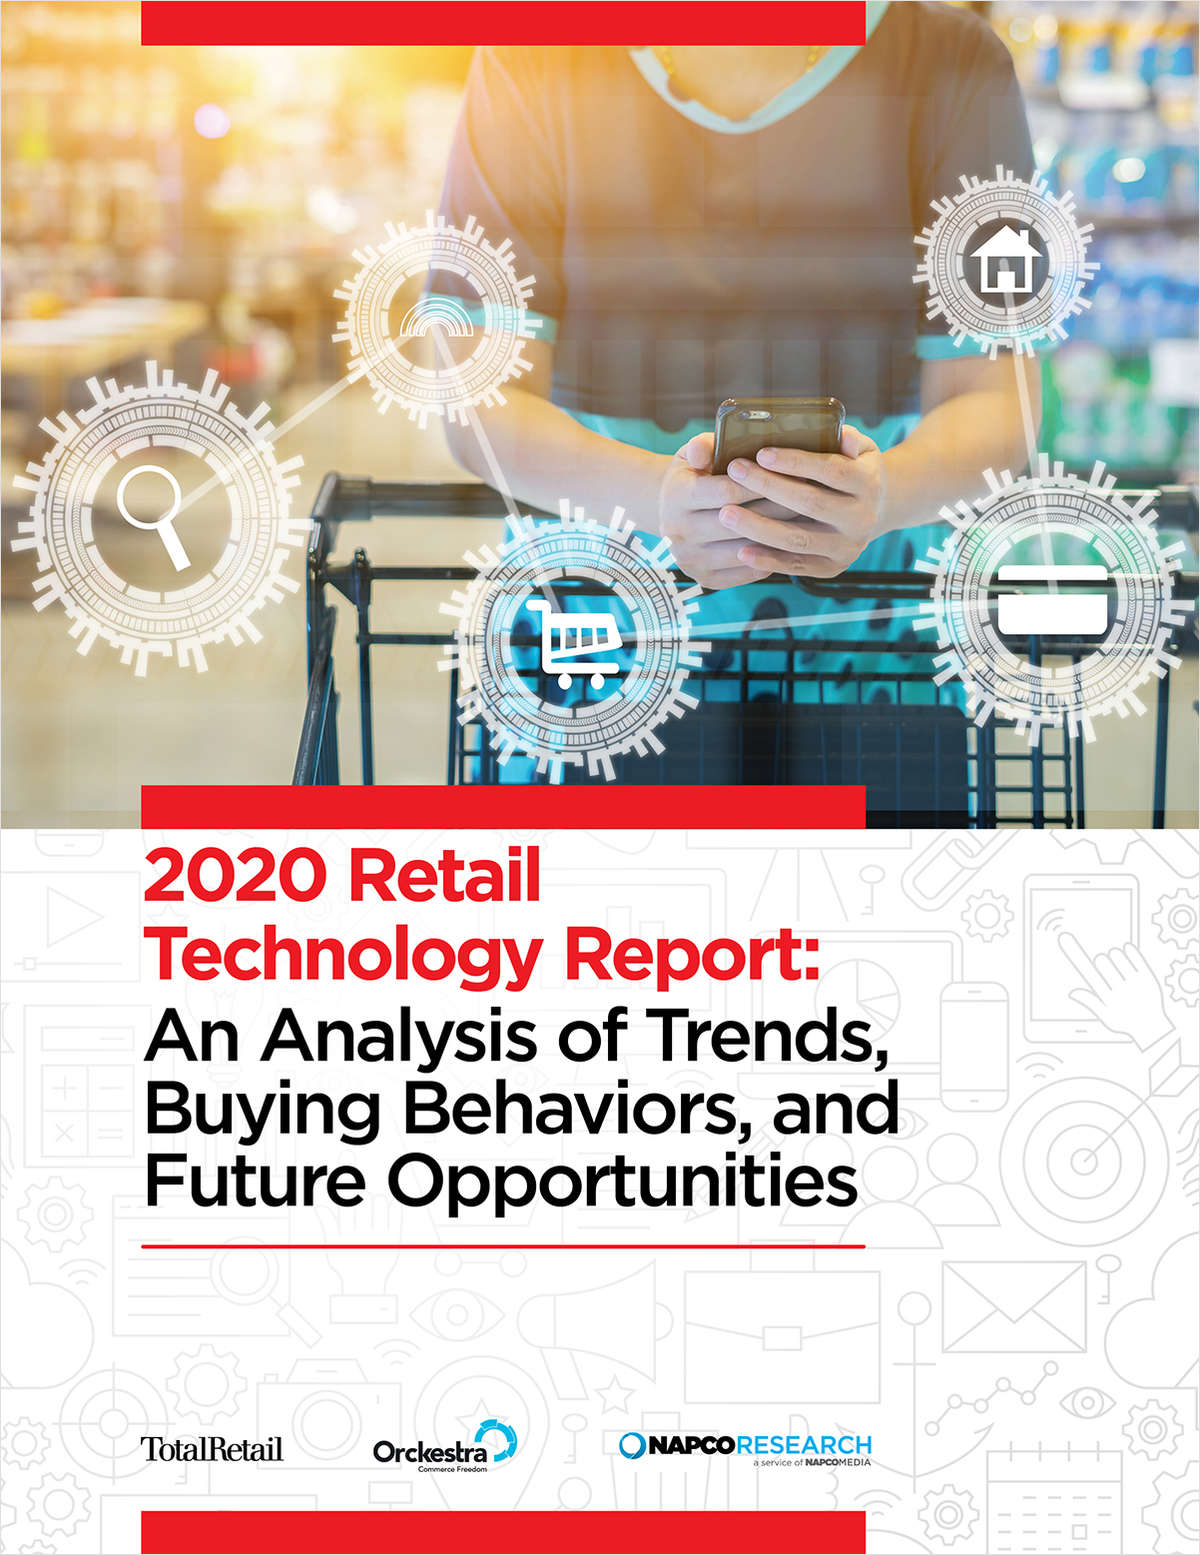 2020 Retail Technology Report